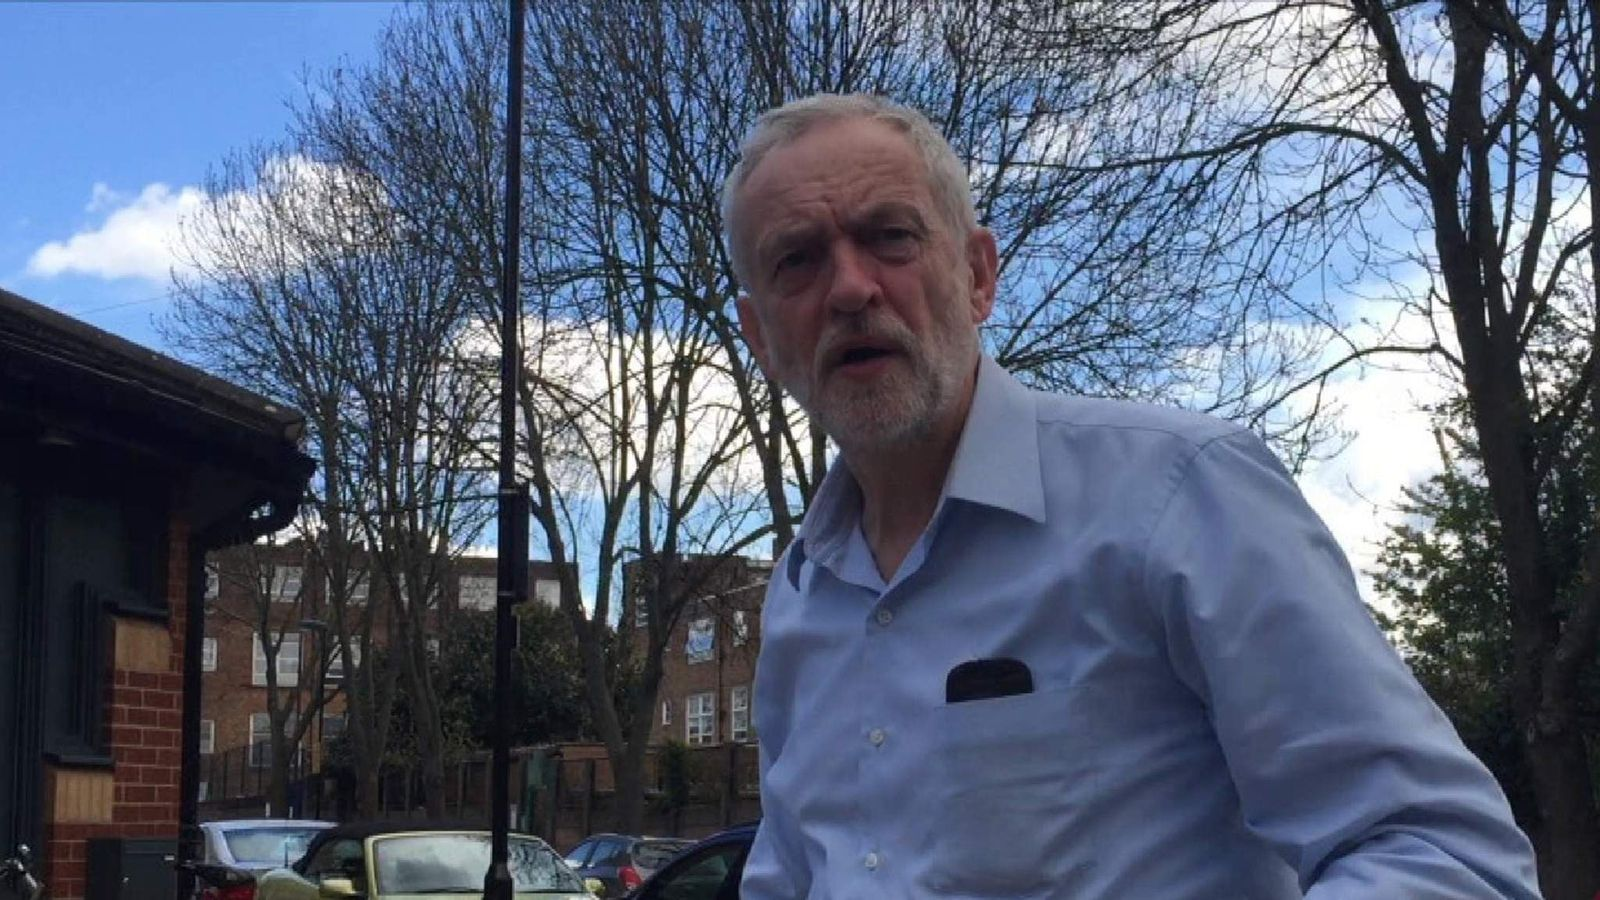 Jeremy Corbyn says nothing in response to questions about anti-Semitism in the Labour Party